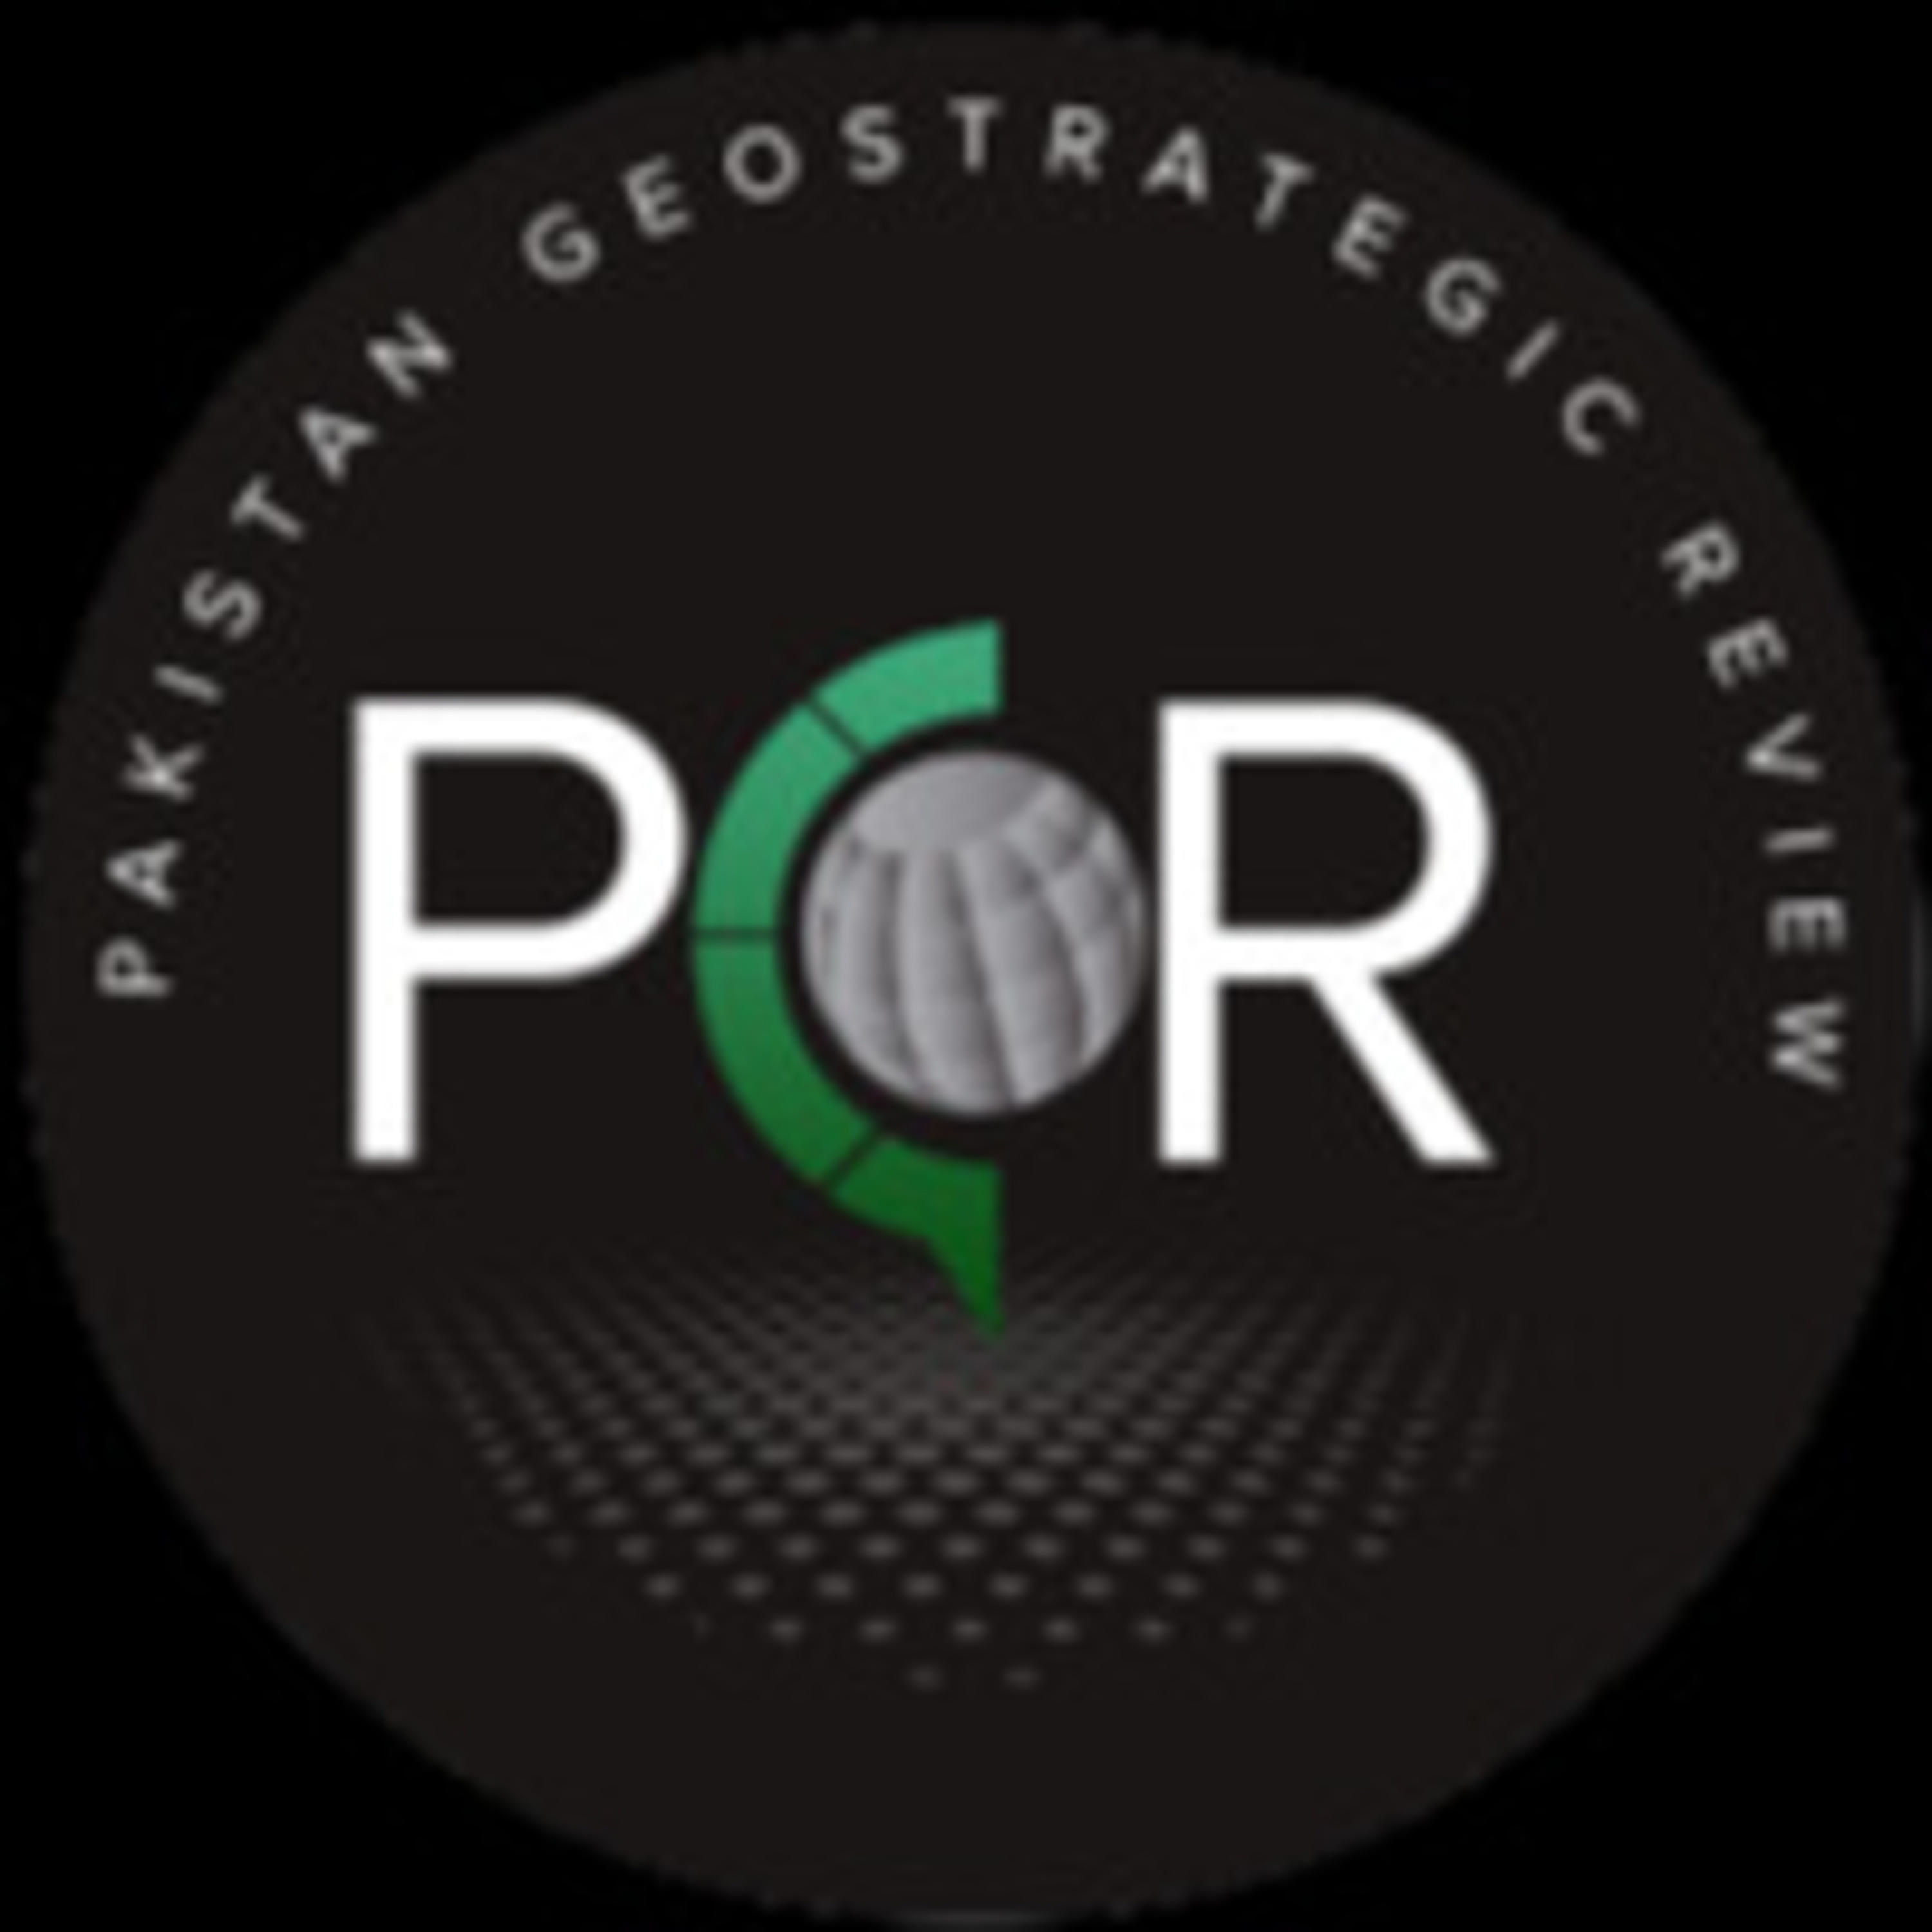 Pakistan Geostrategic Review